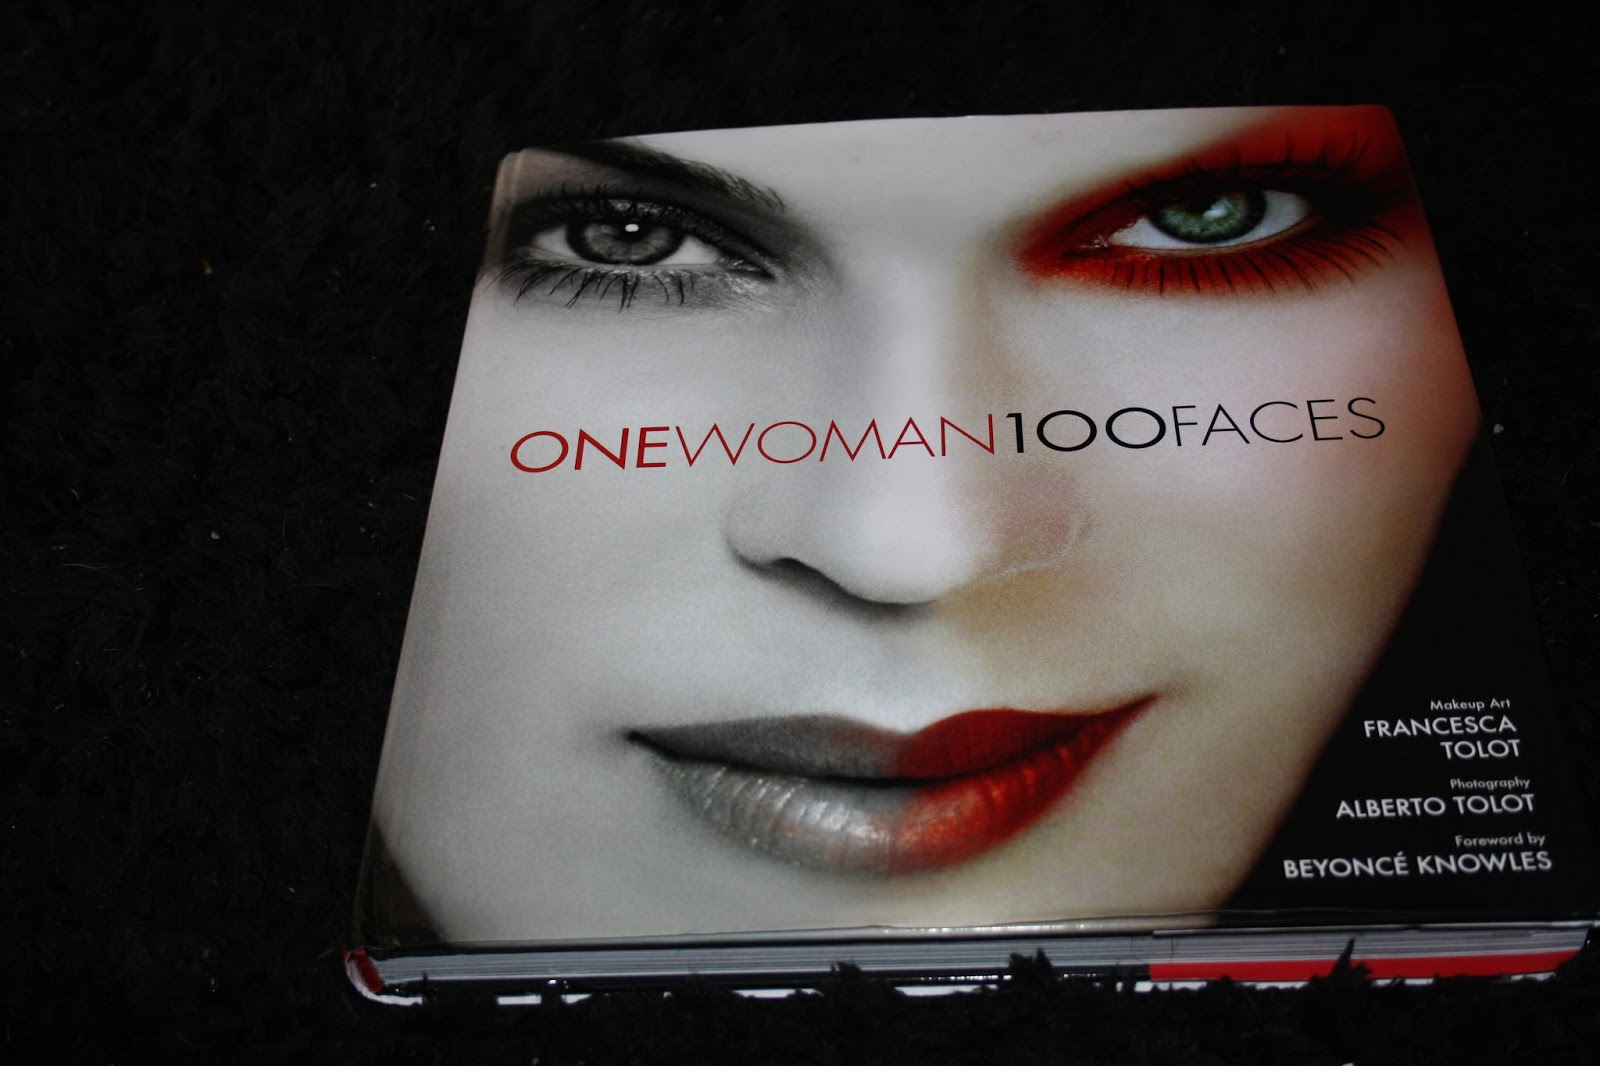 One Woman - 100 Faces